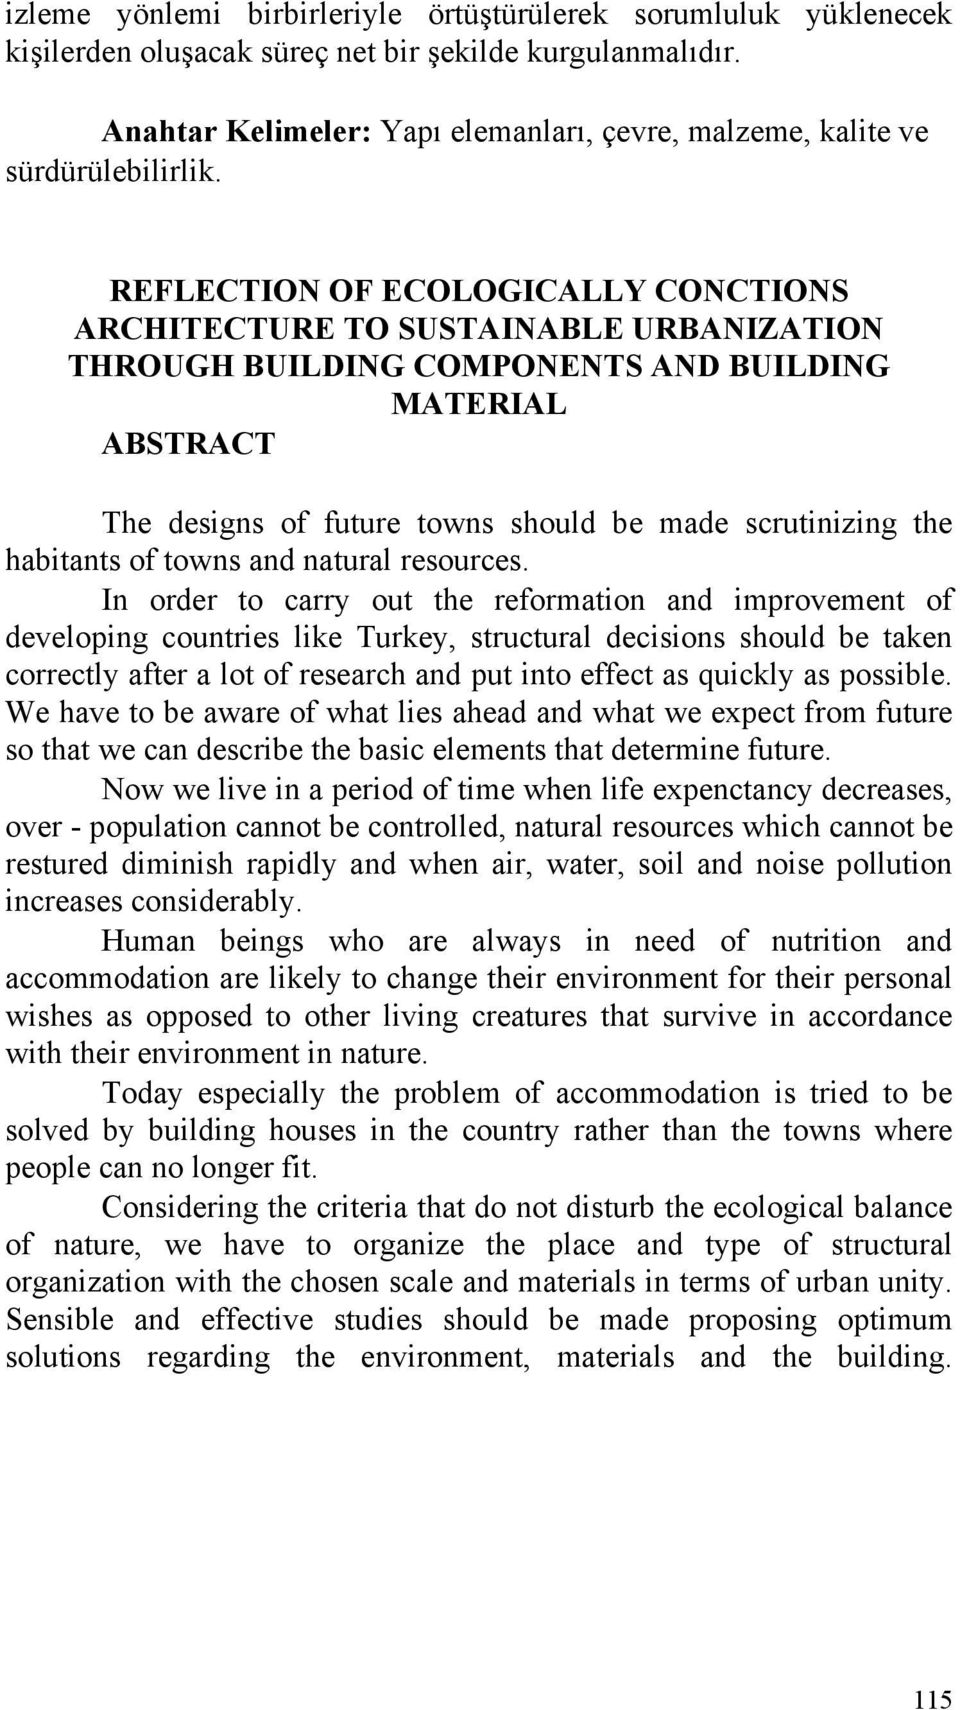 REFLECTION OF ECOLOGICALLY CONCTIONS ARCHITECTURE TO SUSTAINABLE URBANIZATION THROUGH BUILDING COMPONENTS AND BUILDING MATERIAL ABSTRACT The designs of future towns should be made scrutinizing the